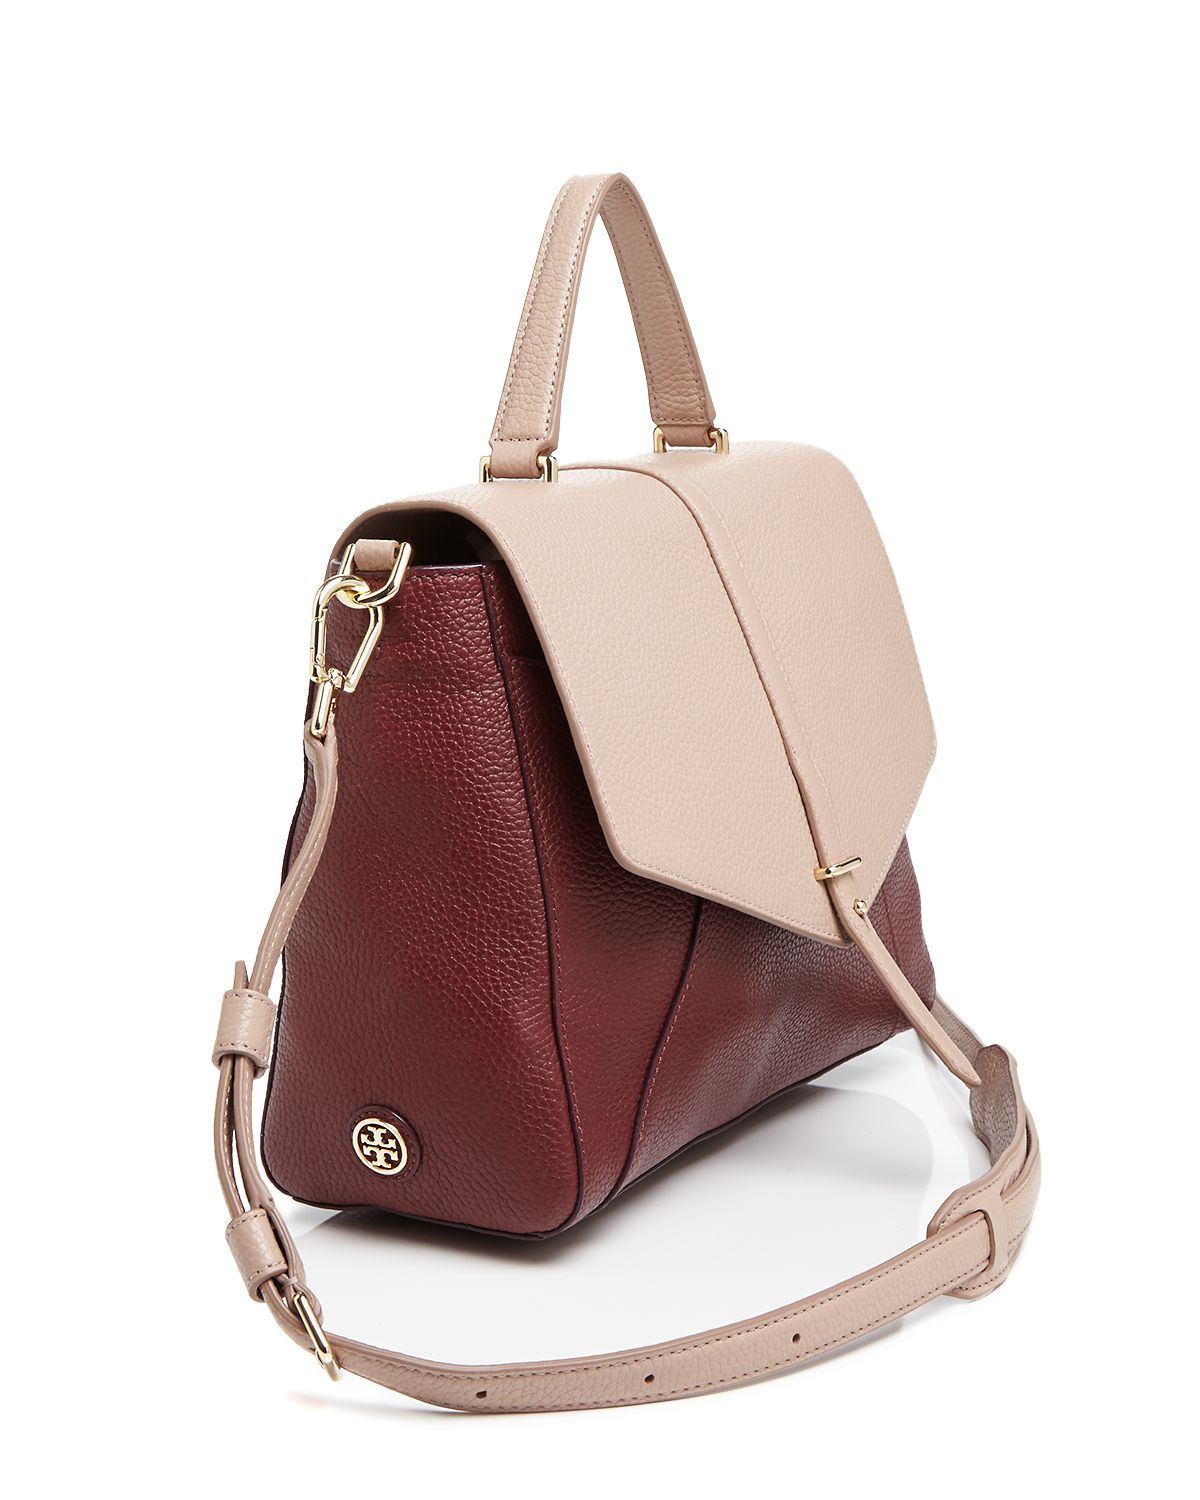 64411bd65e13 Lyst - Tory Burch 797 Color-Blocked Satchel in Natural